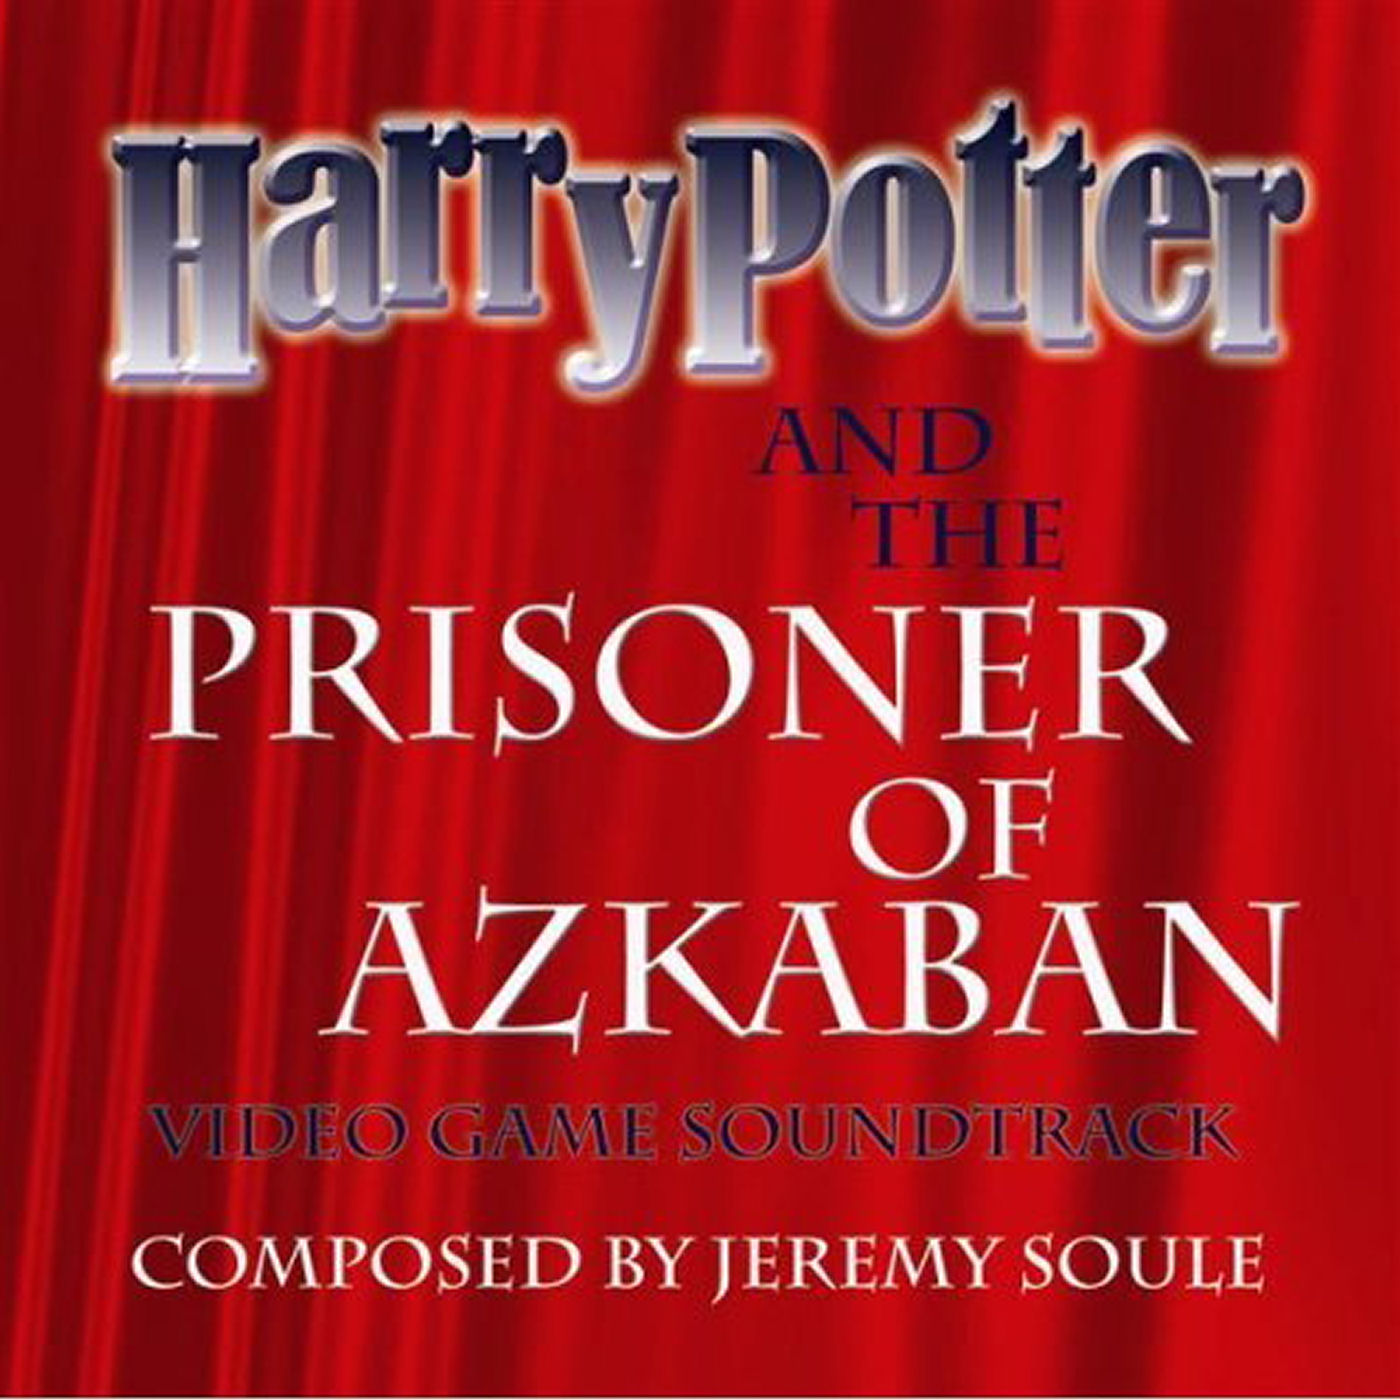 Harry Potter and the Prisoner of Azkaban (video game soundtrack)